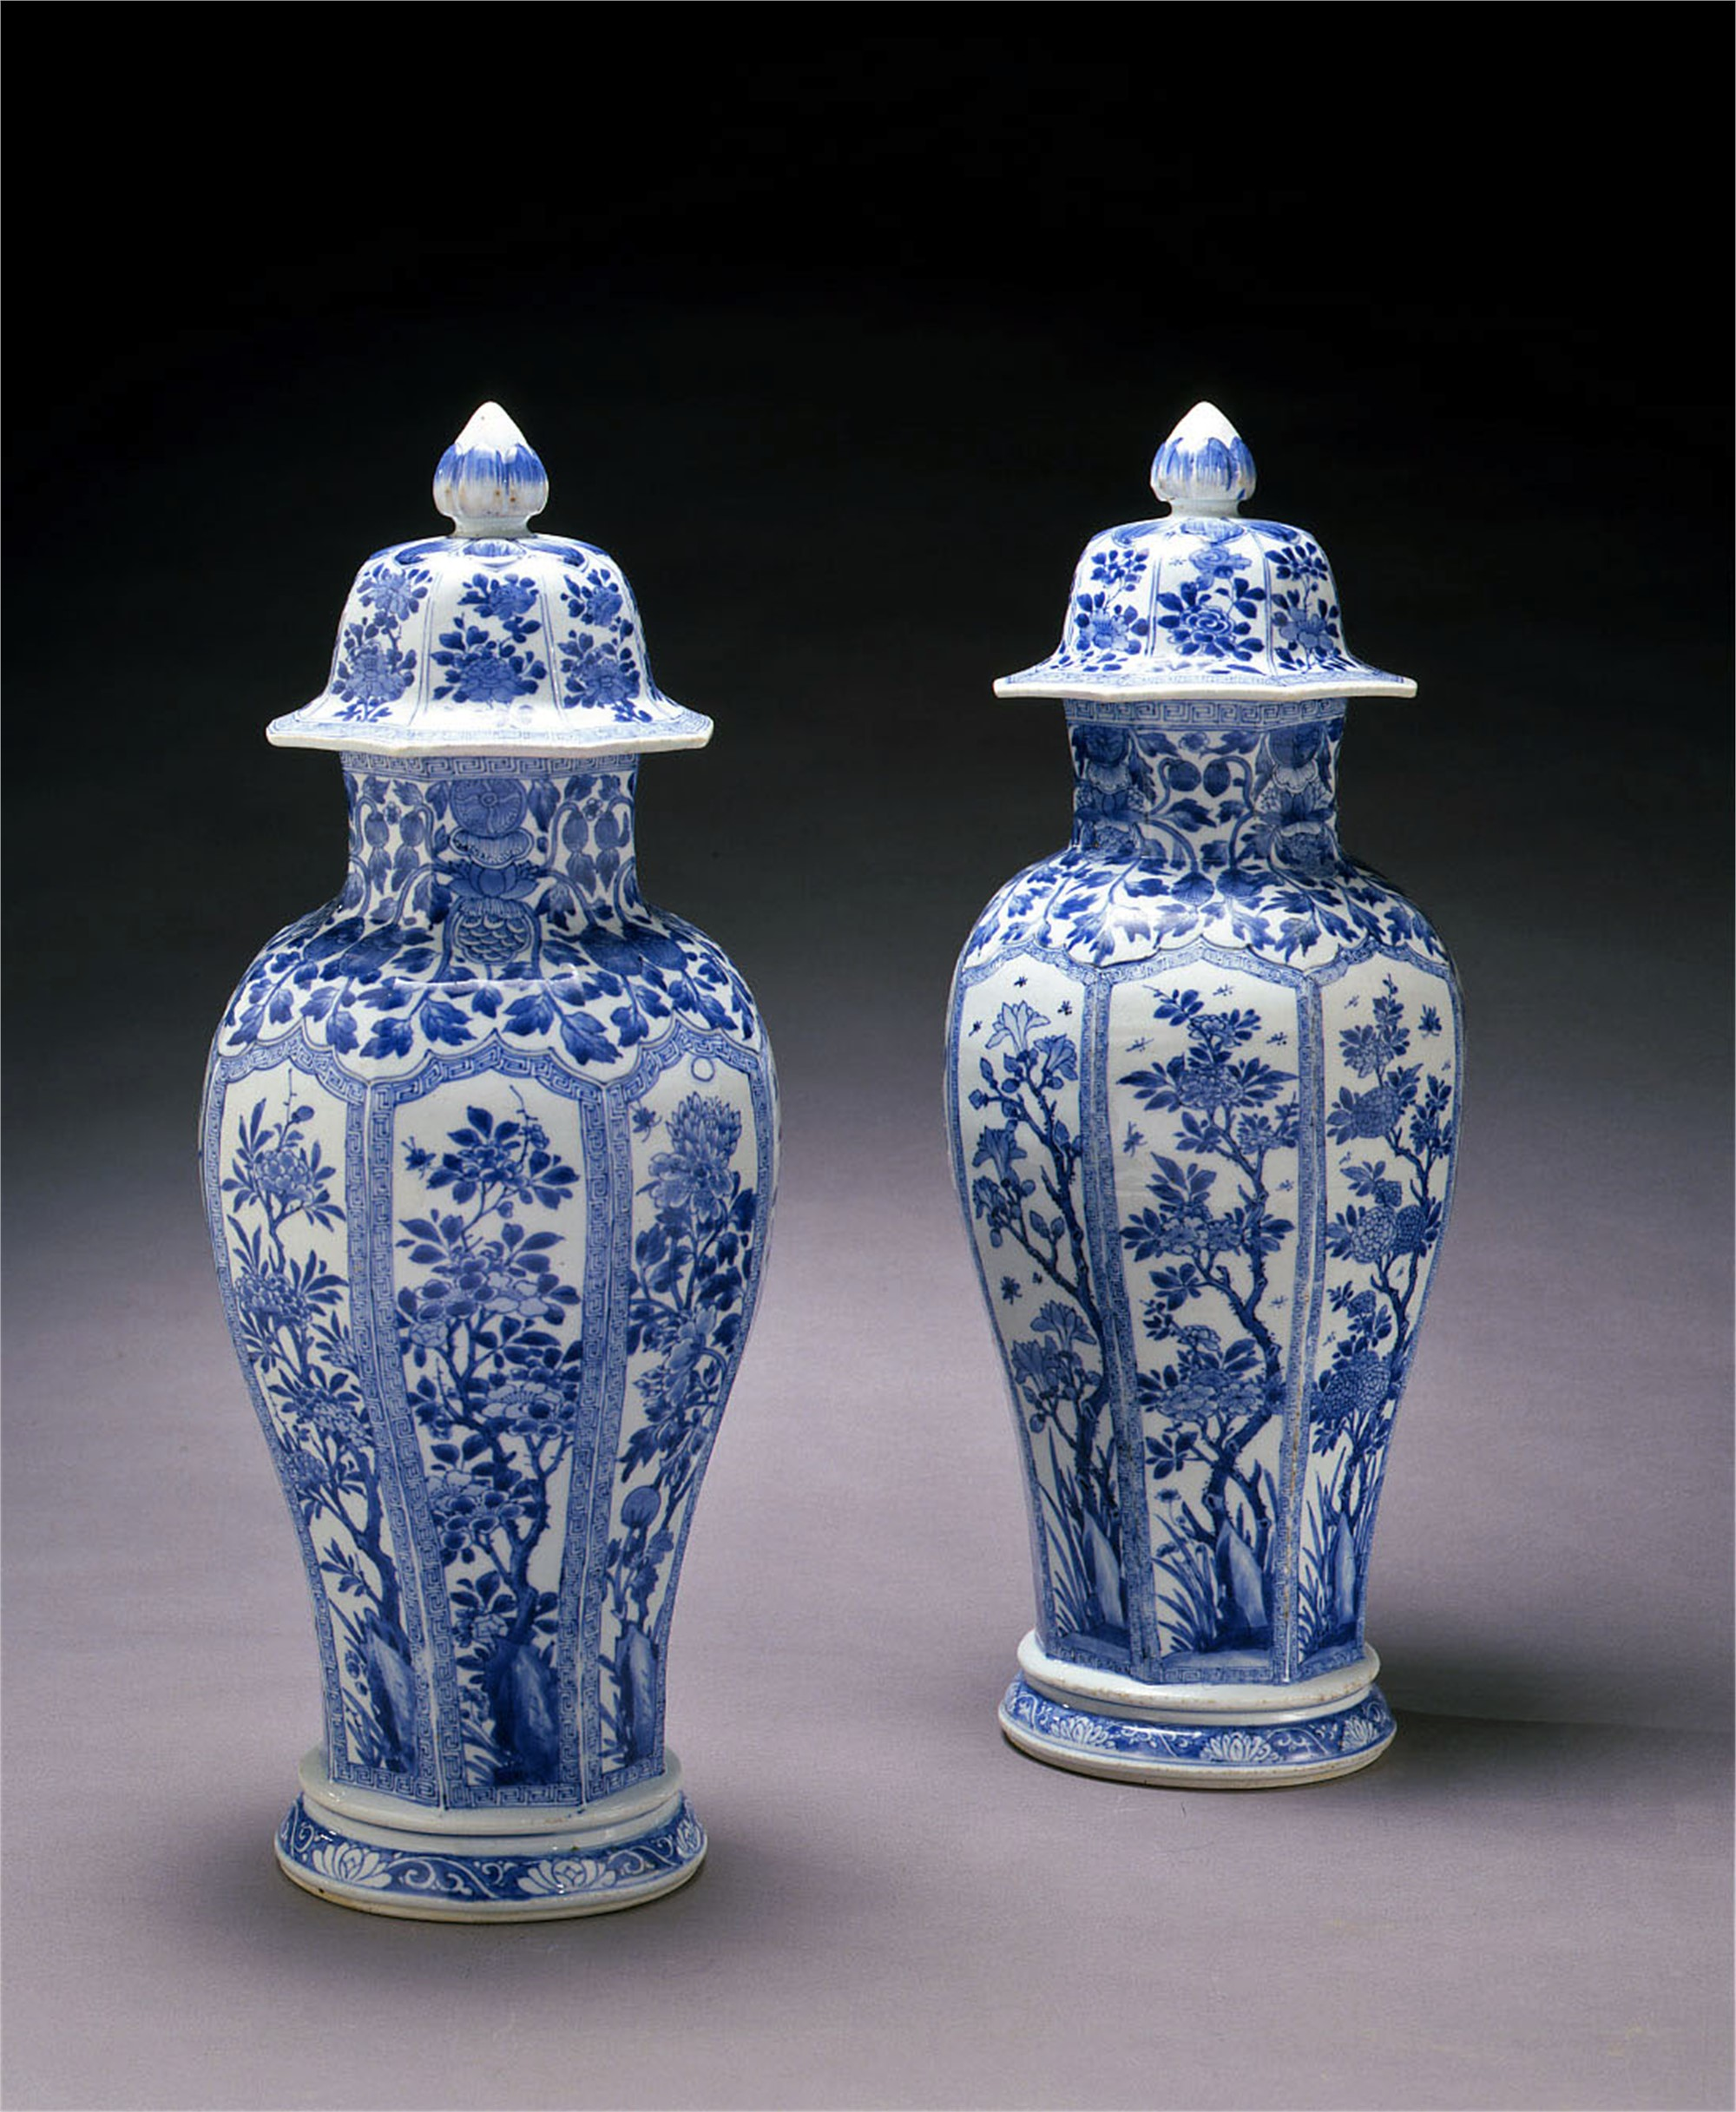 PAIR OF BLUE AND WHITE VASES WITH COVERS